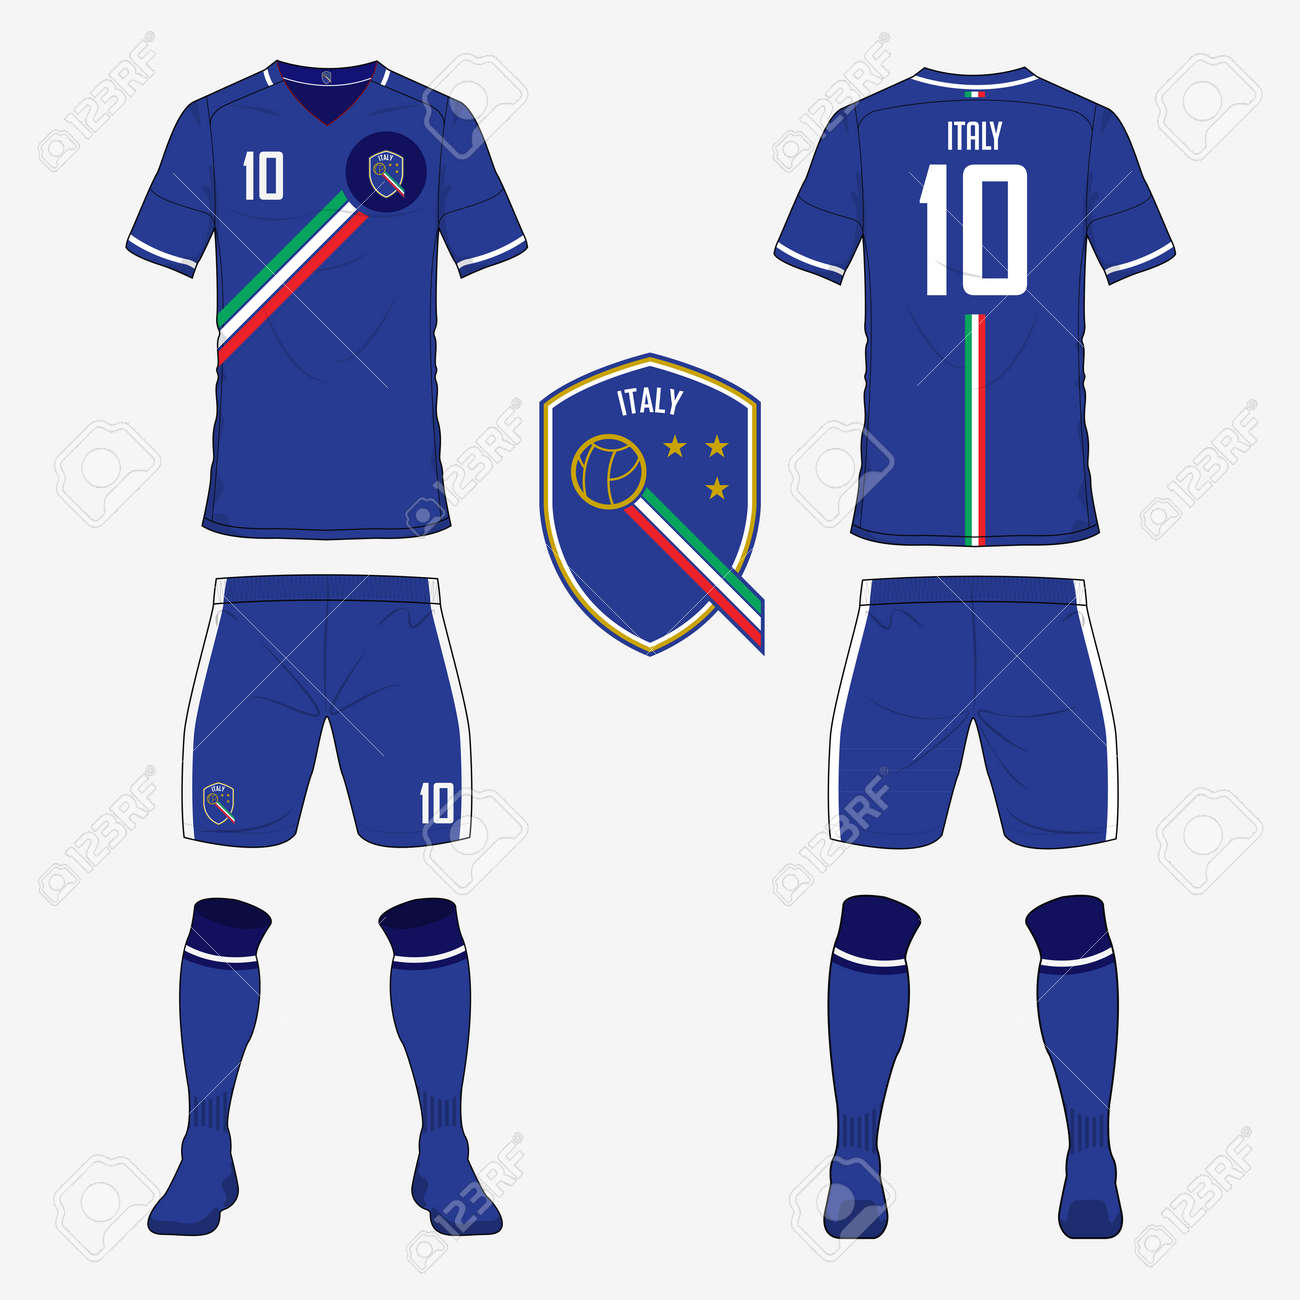 newest collection 9da75 5d368 Set of soccer jersey or football kit template for Italy national..